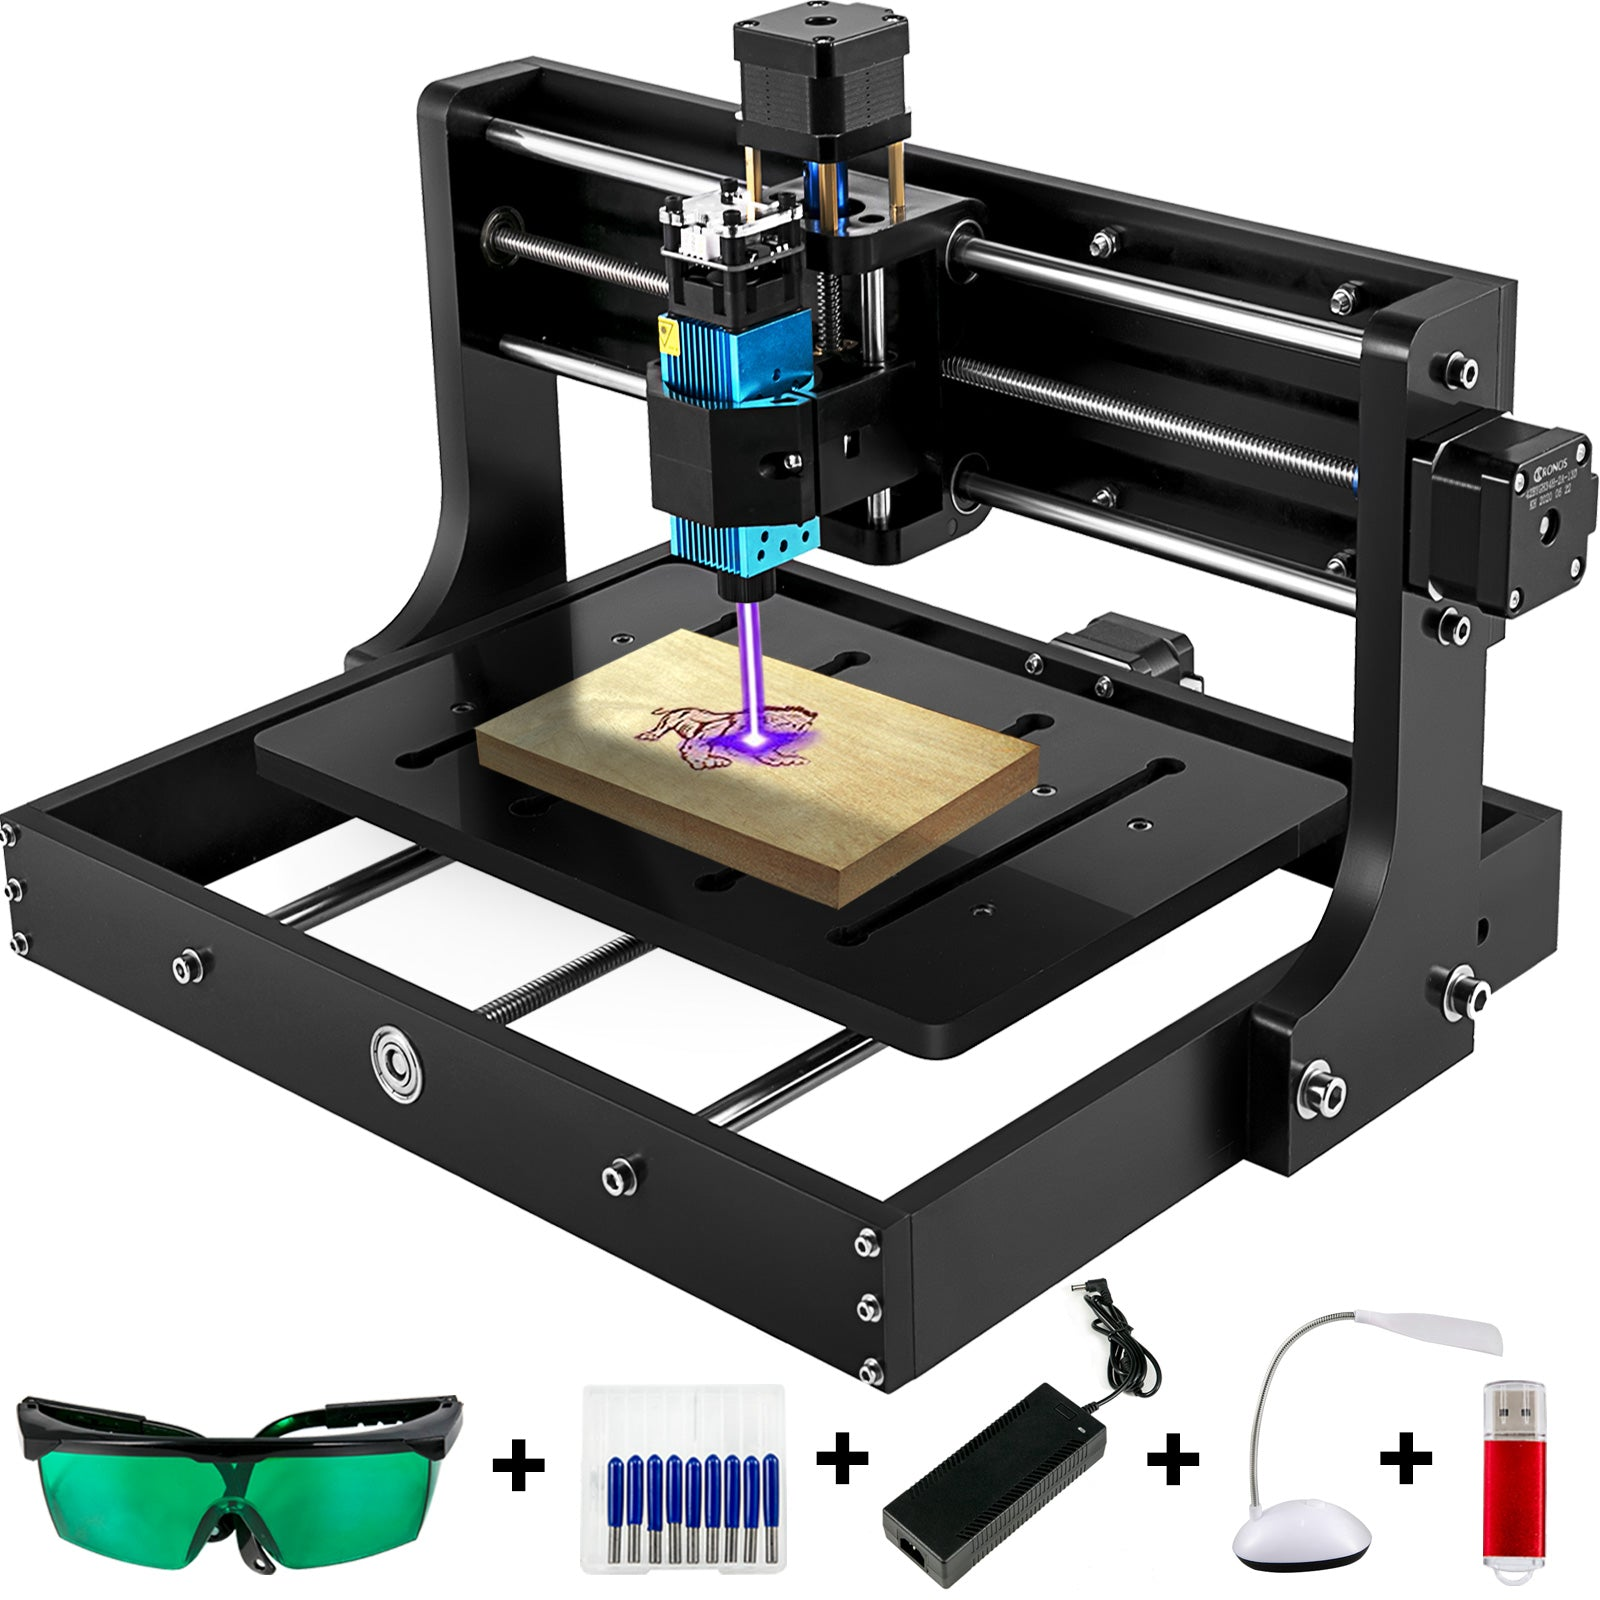 Vevor Cnc 3020 Router Mini Laser Engraver 15000mw Laser Head Diy Plastic Wood Us